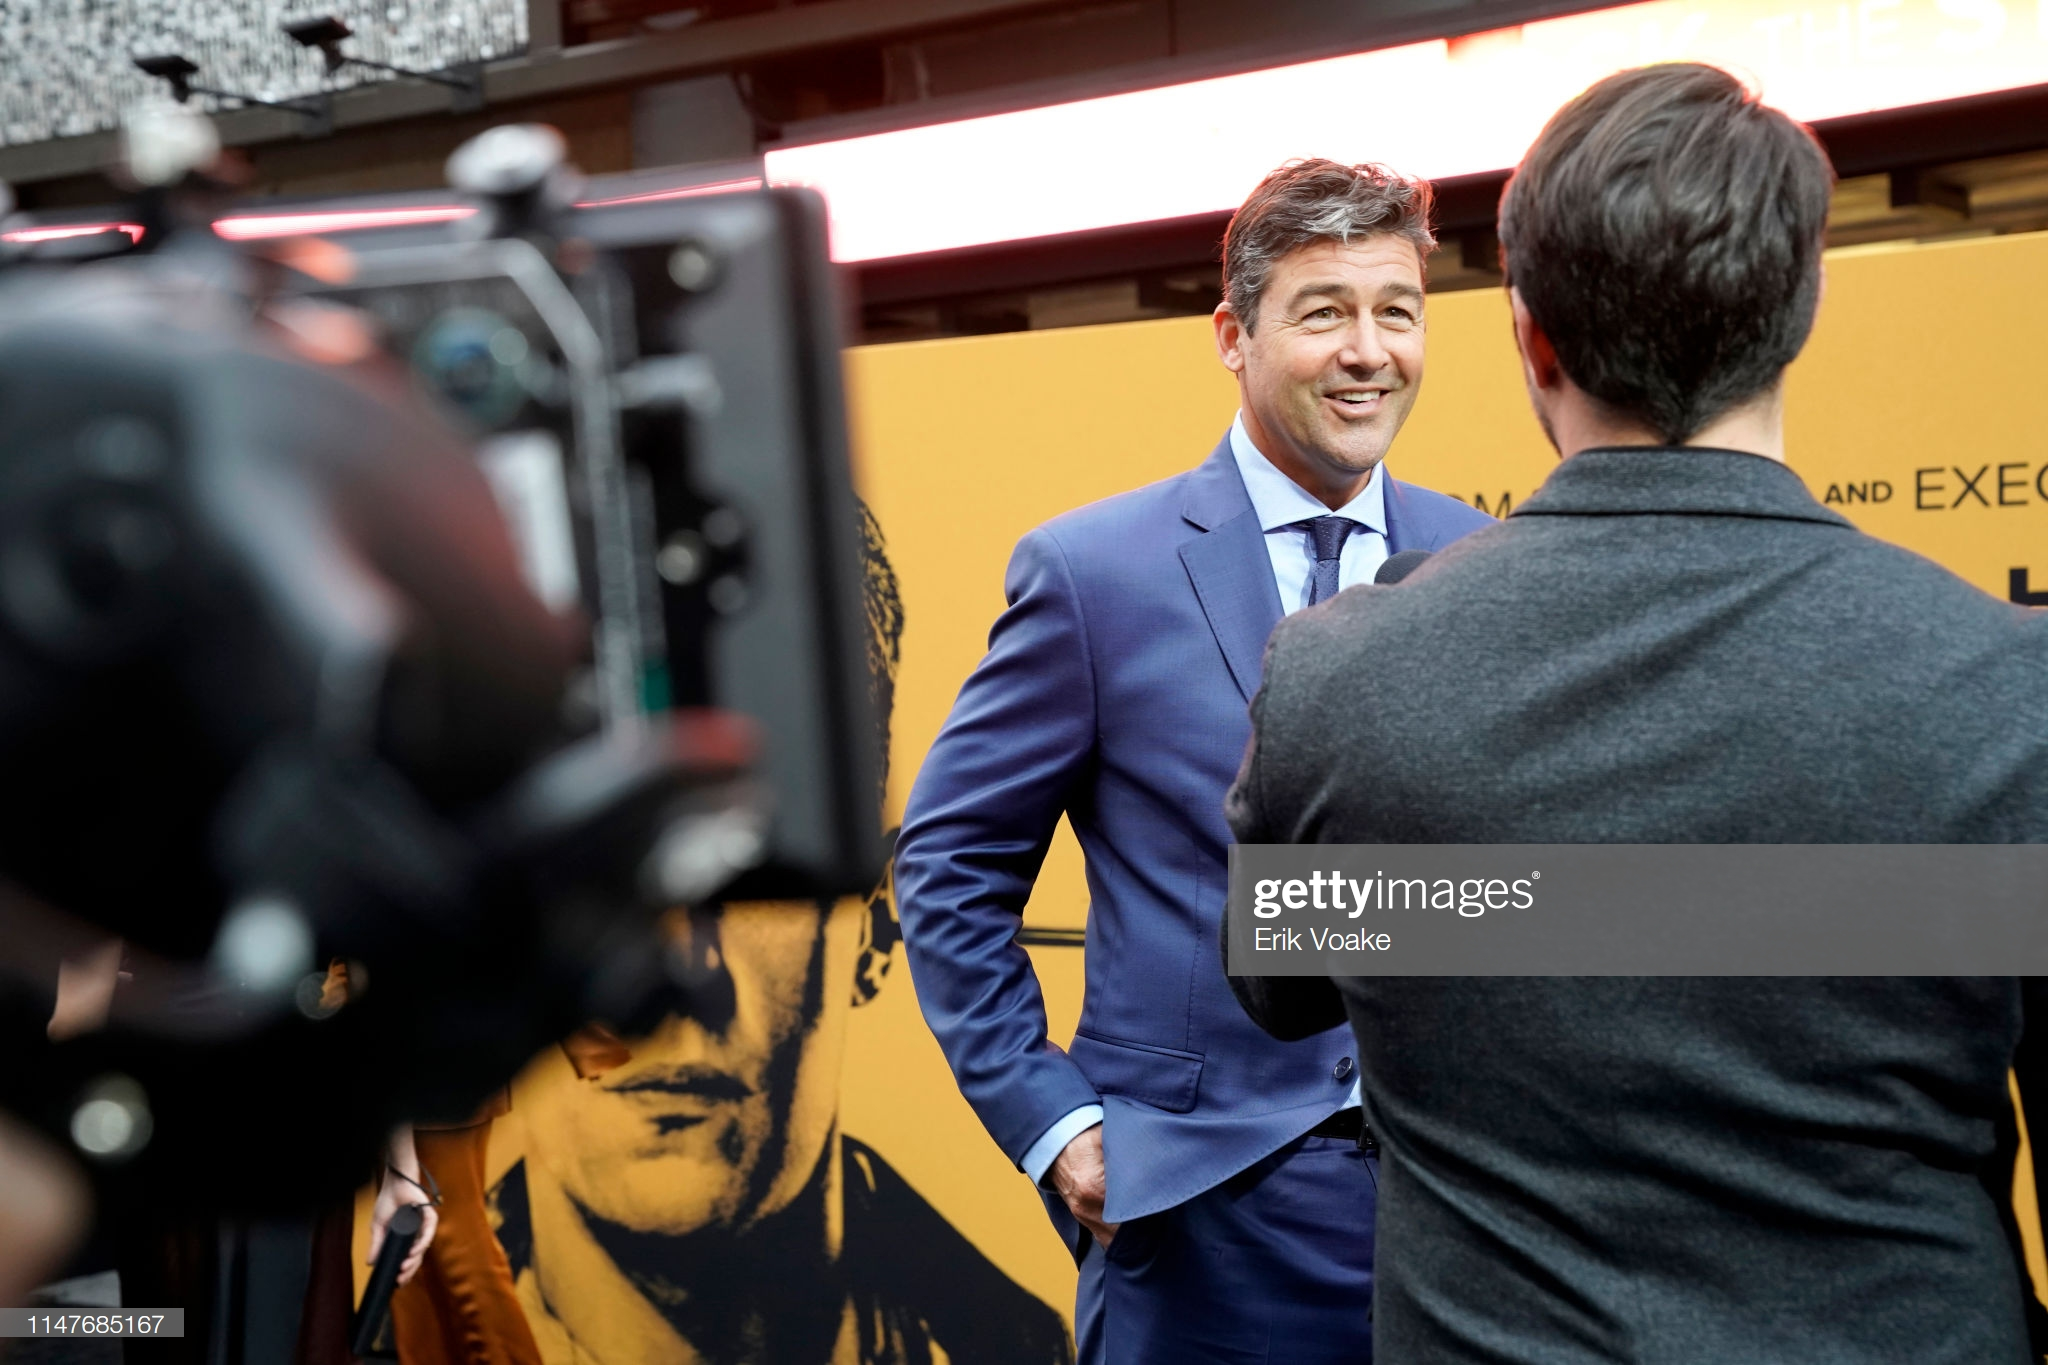 gettyimages-1147685167-2048x2048-1.jpg